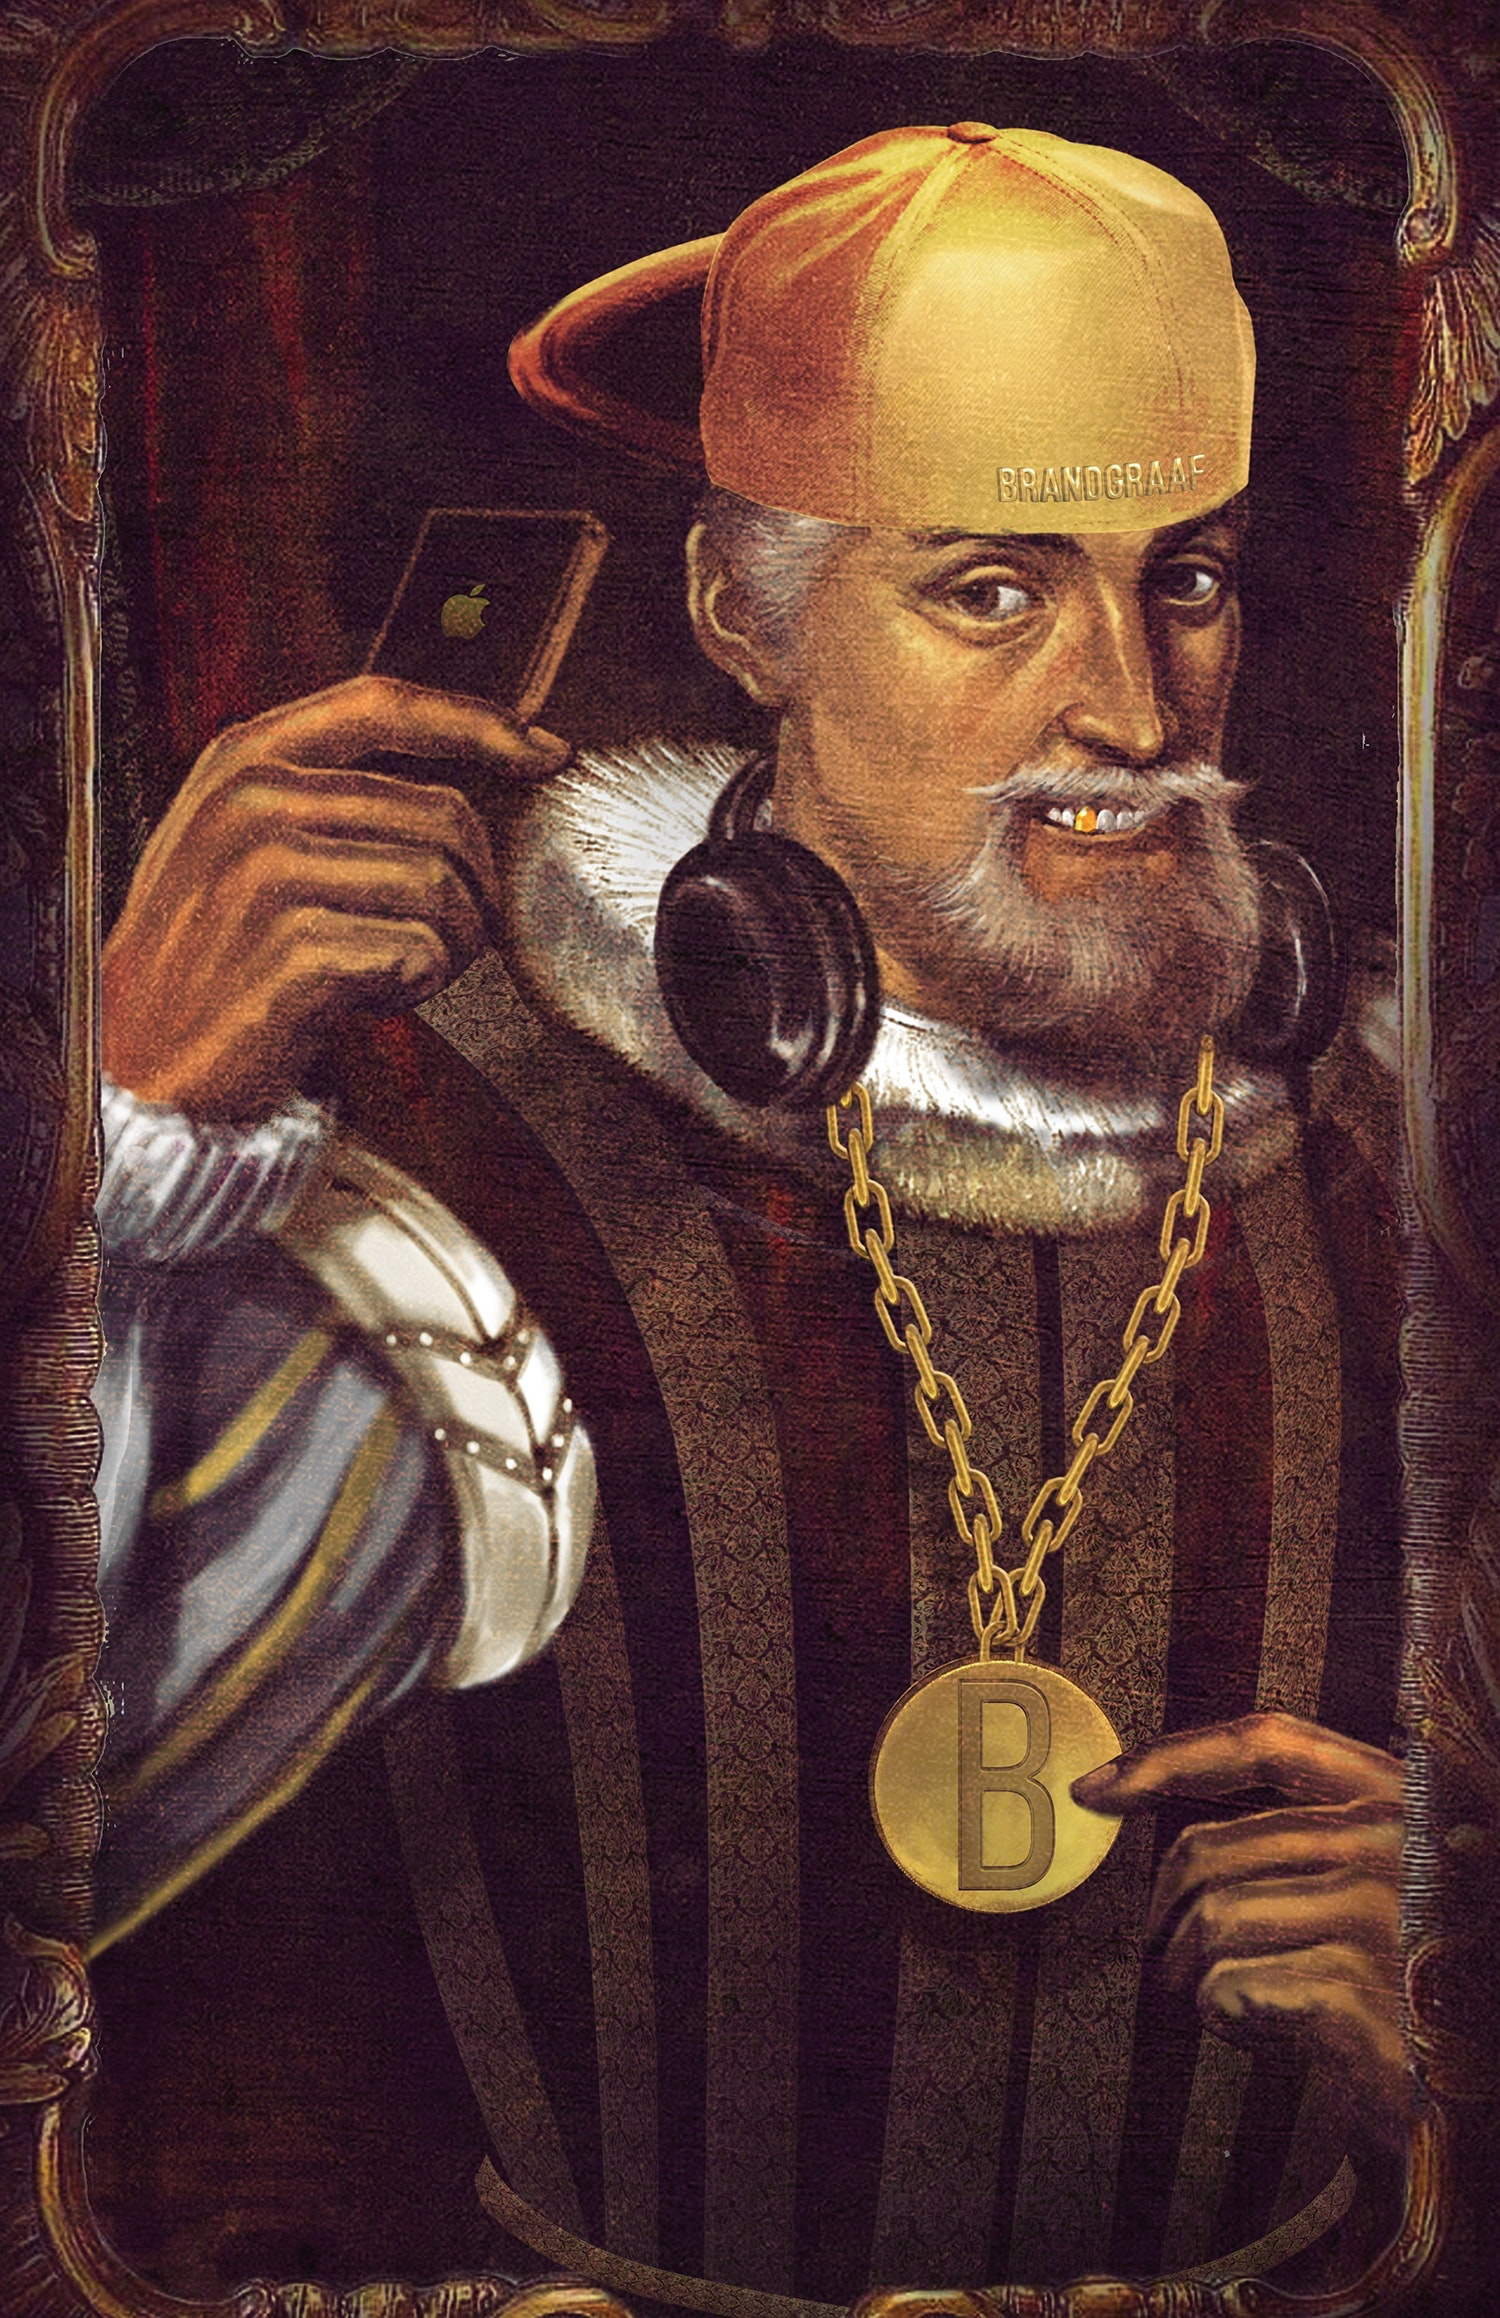 A portrait illustration of a royal character with a gold chain